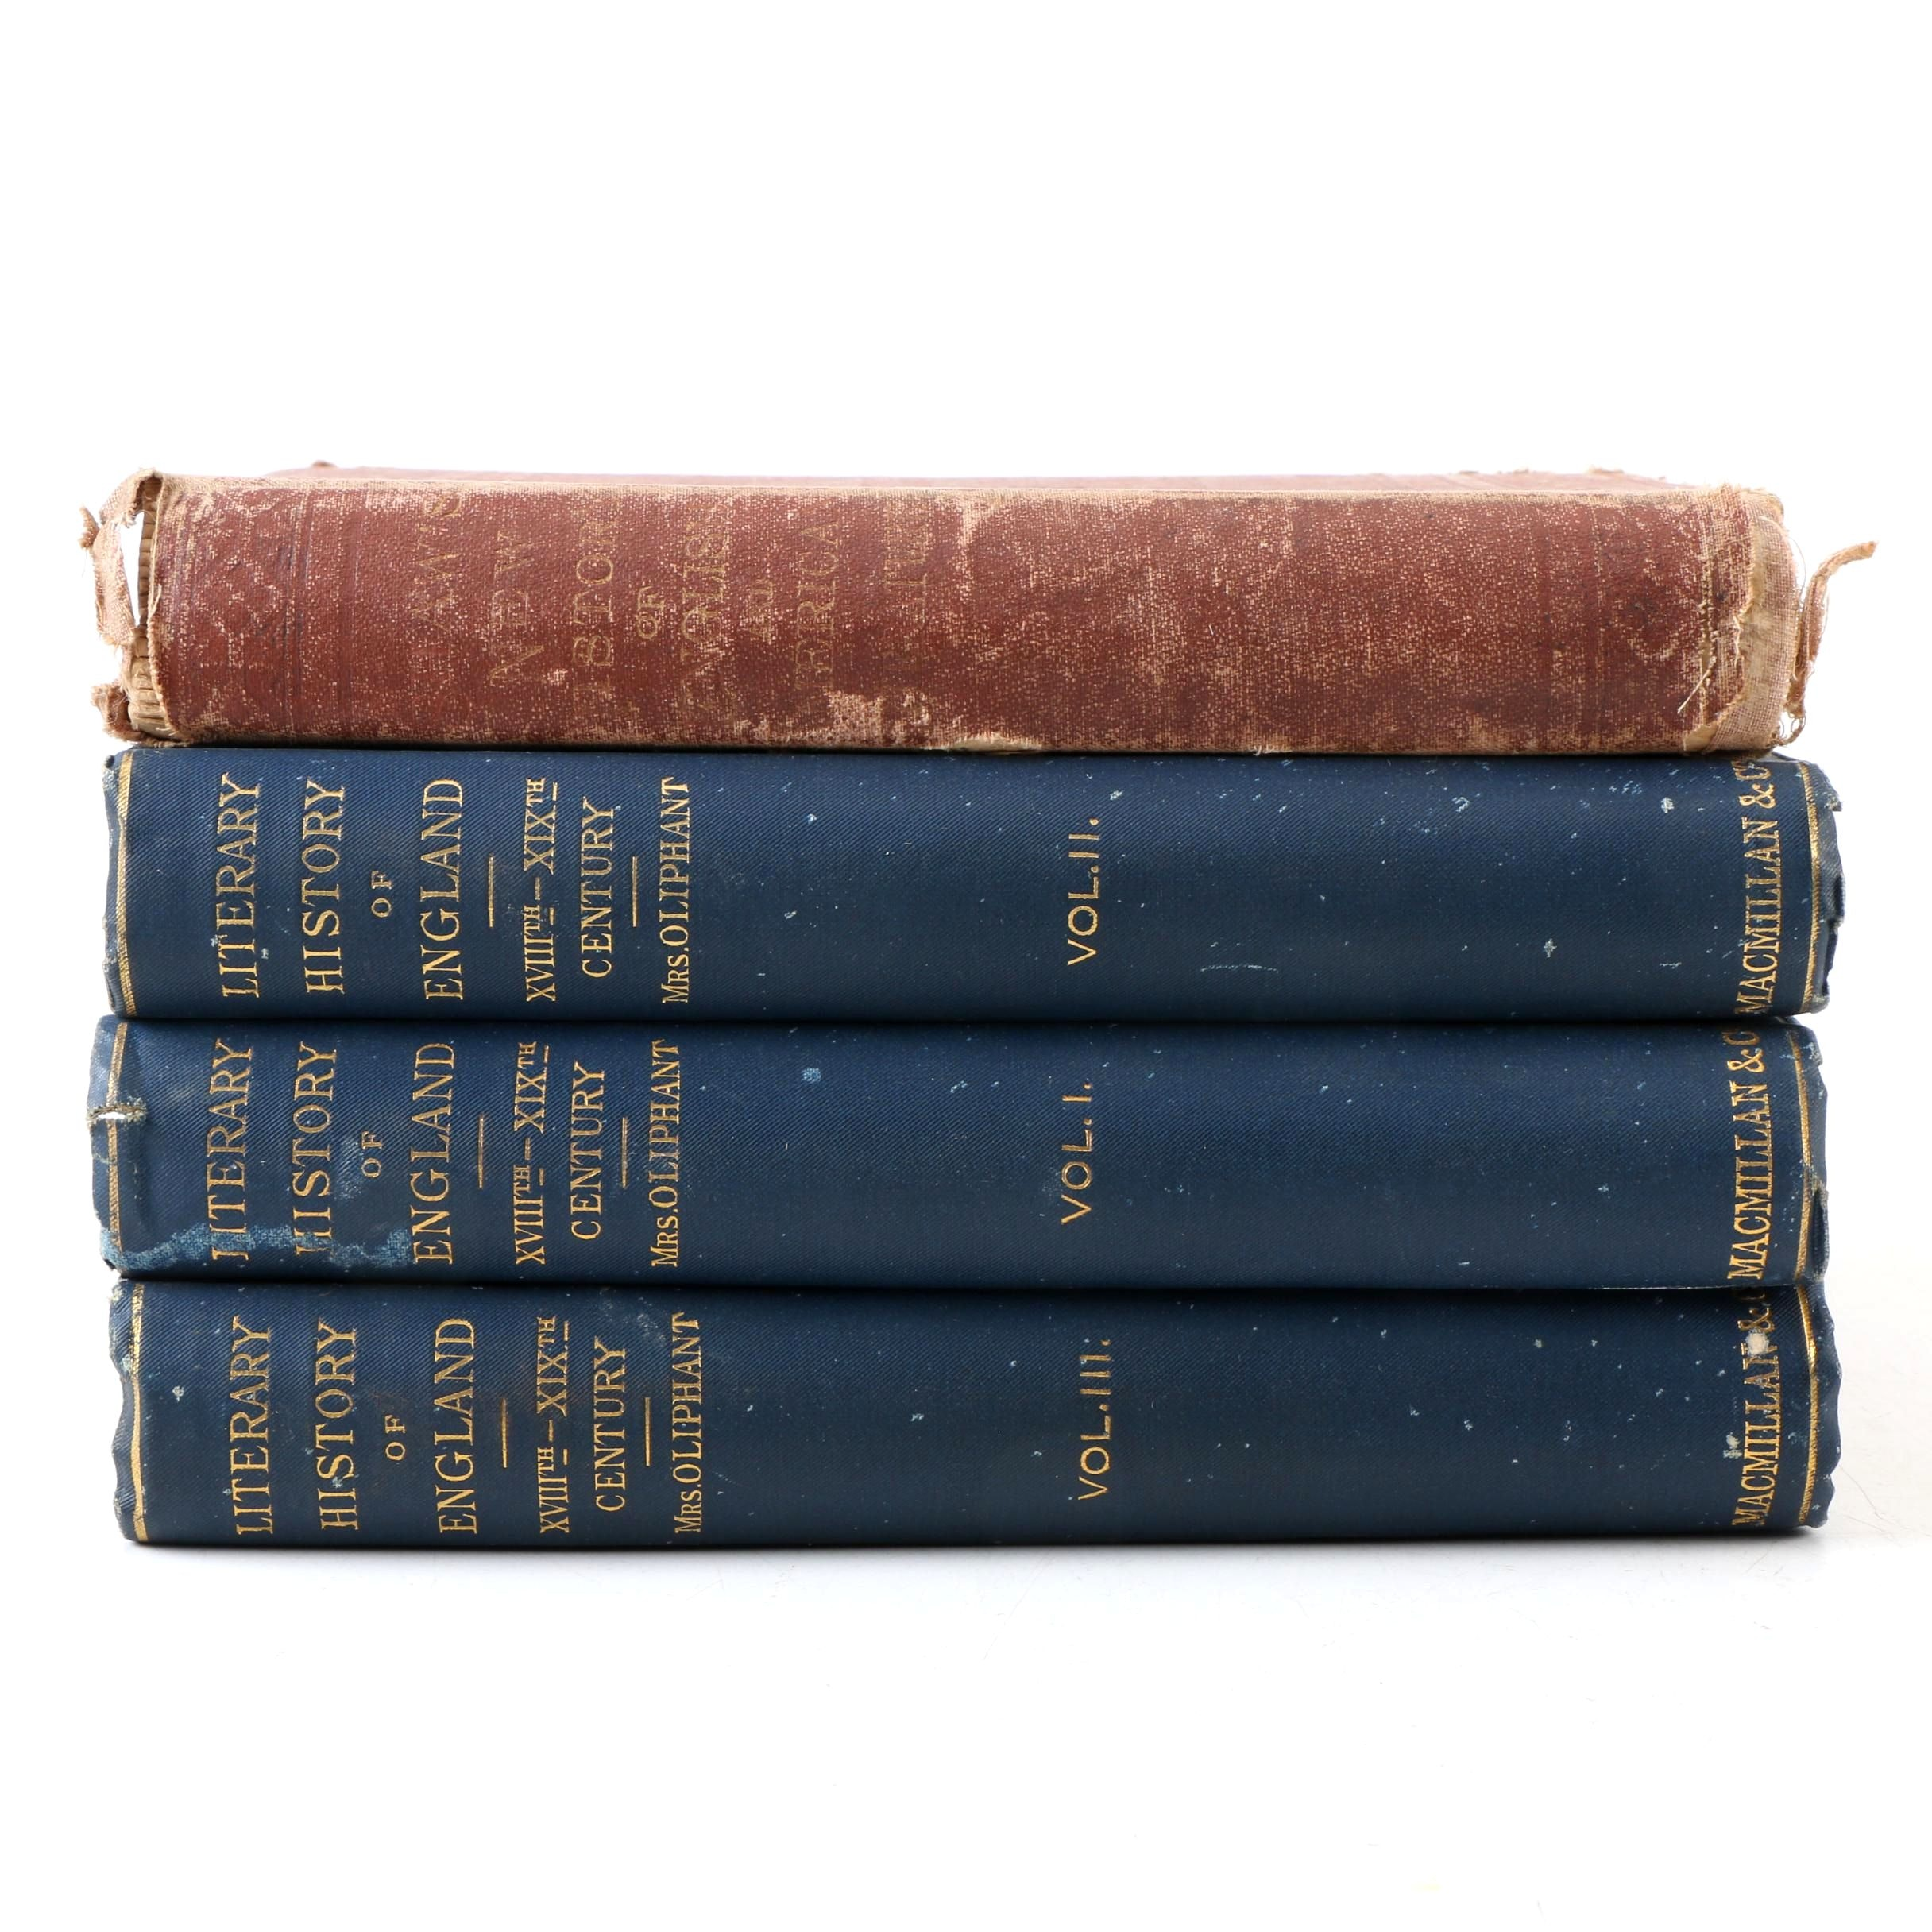 1876 and 1889 Literary History Books